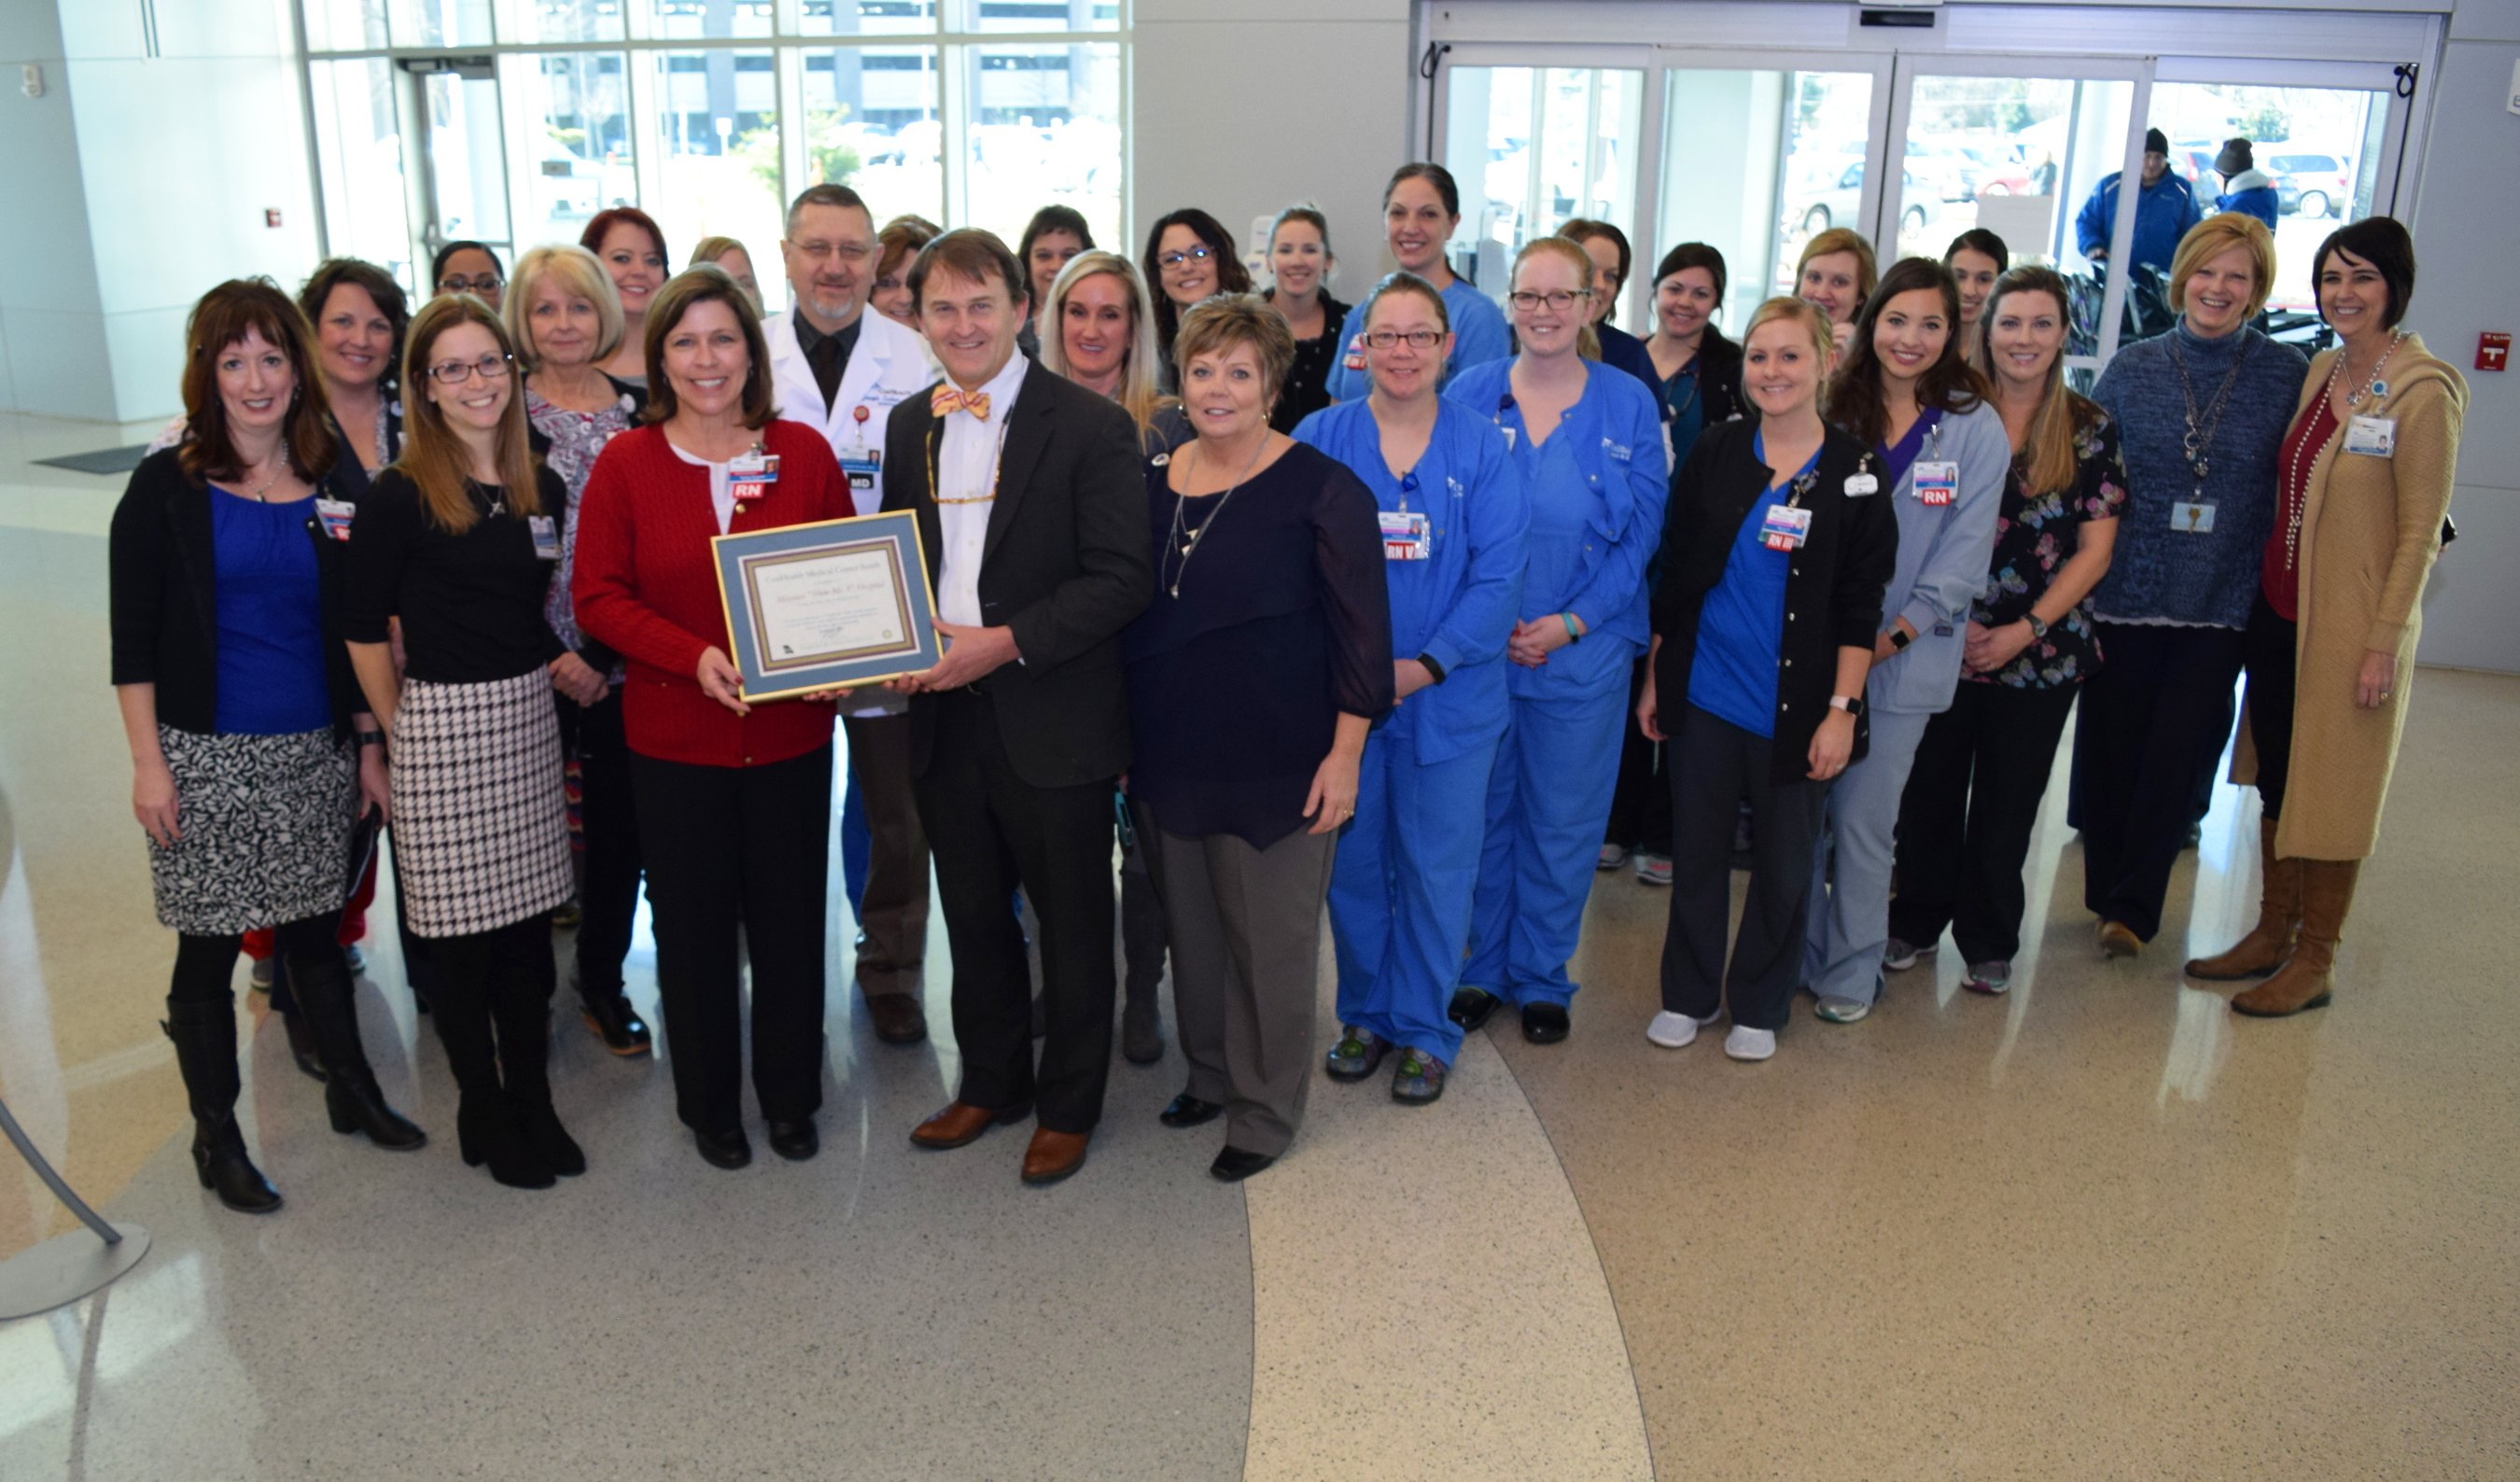 CoxHealth's team poses with its Show-Me 5 certificate.